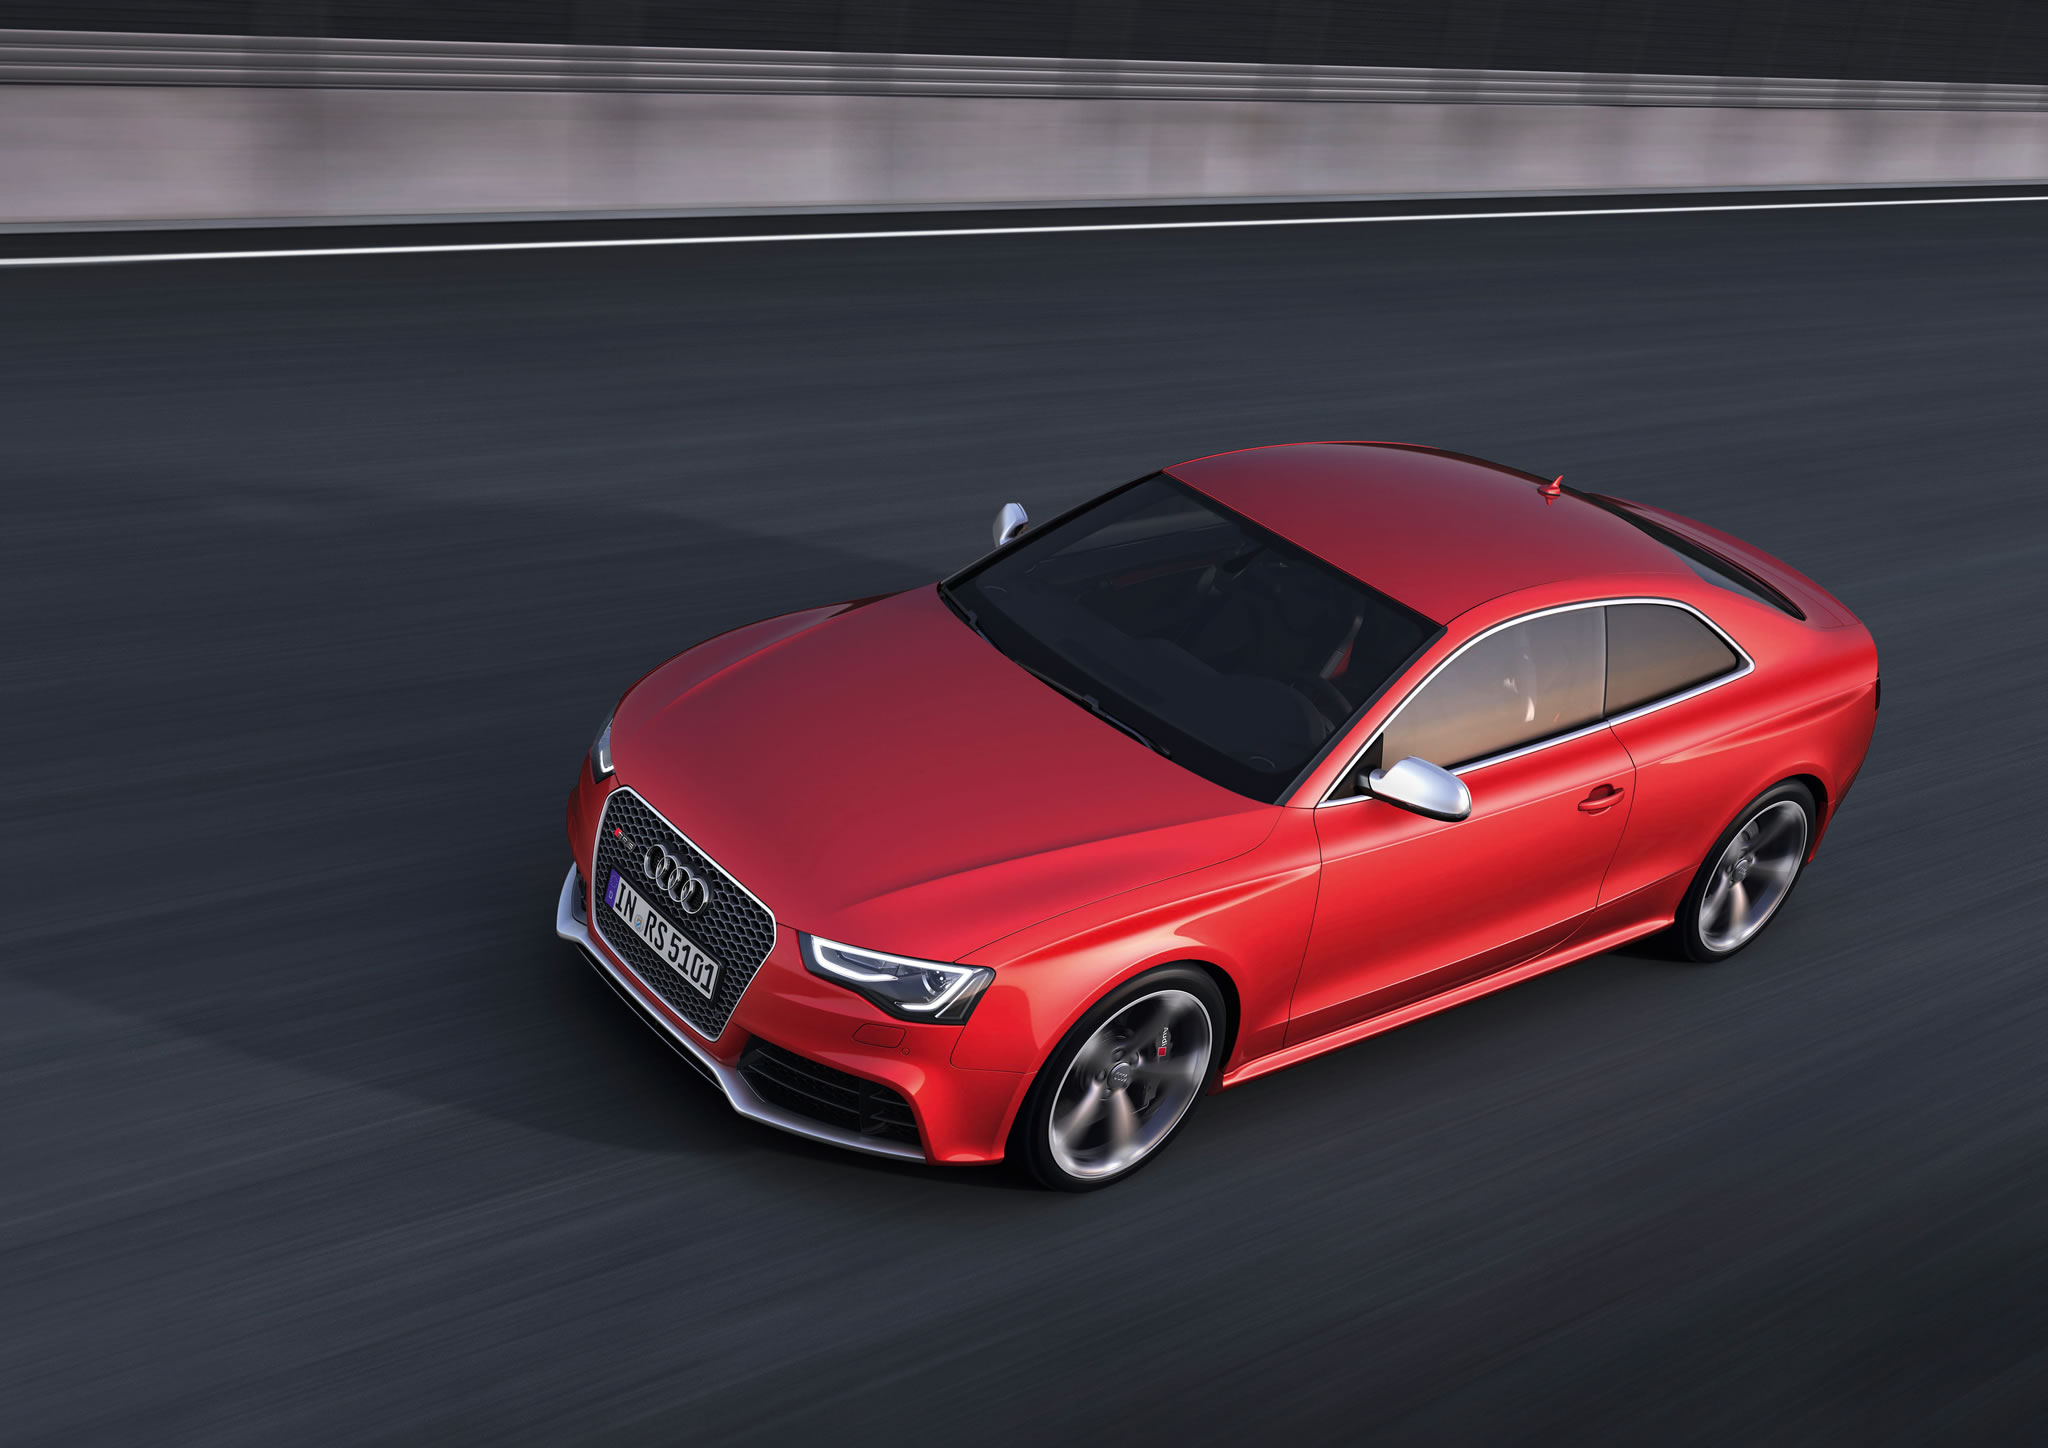 2014 audi rs 5 coupe front photo misano red color size 2048 x 1448 nr 17 49. Black Bedroom Furniture Sets. Home Design Ideas